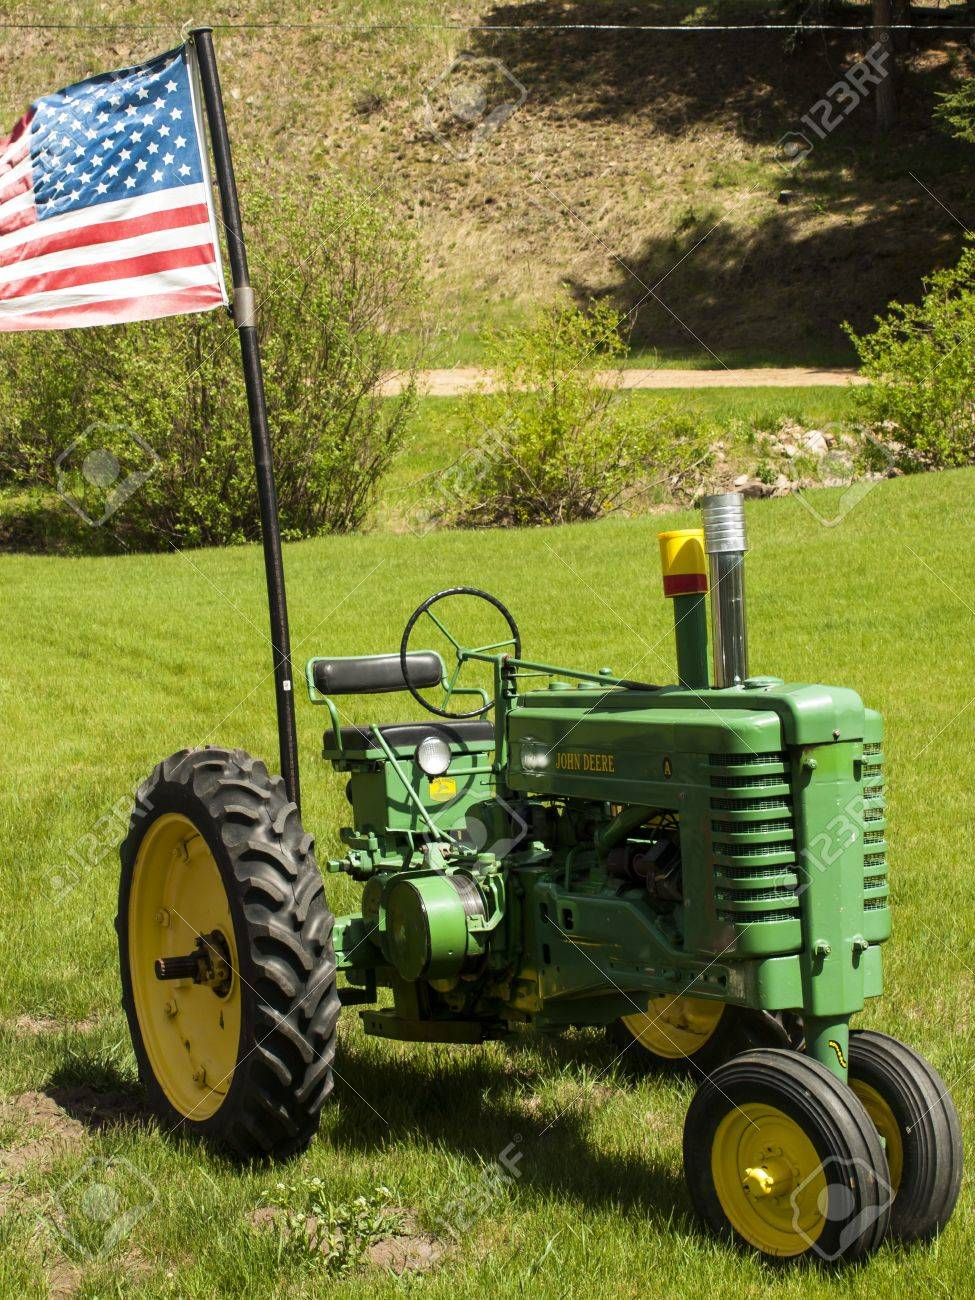 Old Farm Tractor With American Flags. Stock Photo, Picture And Royalty Free  Image. Image 14147680.